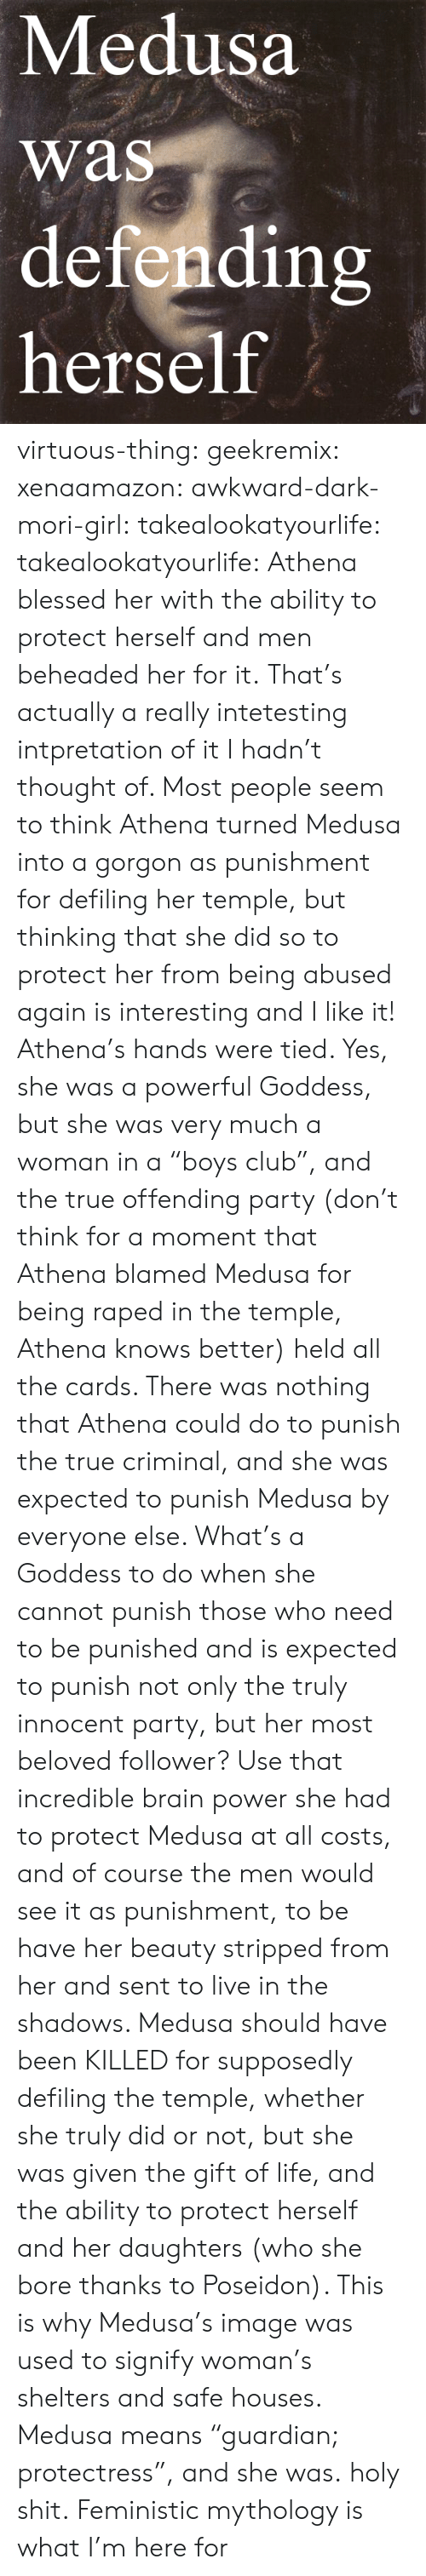 """Blessed, Club, and Life: Medusa  was  defendin  herself  rs virtuous-thing: geekremix:  xenaamazon:  awkward-dark-mori-girl:  takealookatyourlife:  takealookatyourlife: Athena blessed her with the ability to protect herself and men beheaded her for it.  That's actually a really intetesting intpretation of it I hadn't thought of. Most people seem to think Athena turned Medusa into a gorgon as punishment for defiling her temple, but thinking that she did so to protect her from being abused again is interesting and I like it!   Athena's hands were tied. Yes, she was a powerful Goddess, but she was very much a woman in a """"boys club"""", and the true offending party (don't think for a moment that Athena blamed Medusa for being raped in the temple, Athena knows better) held all the cards. There was nothing that Athena could do to punish the true criminal, and she was expected to punish Medusa by everyone else. What's a Goddess to do when she cannot punish those who need to be punished and is expected to punish not only the truly innocent party, but her most beloved follower? Use that incredible brain power she had to protect Medusa at all costs, and of course the men would see it as punishment, to be have her beauty stripped from her and sent to live in the shadows. Medusa should have been KILLED for supposedly defiling the temple, whether she truly did or not, but she was given the gift of life, and the ability to protect herself and her daughters (who she bore thanks to Poseidon). This is why Medusa's image was used to signify woman's shelters and safe houses. Medusa means """"guardian; protectress"""", and she was.  holy shit.   Feministic mythology is what I'm here for"""